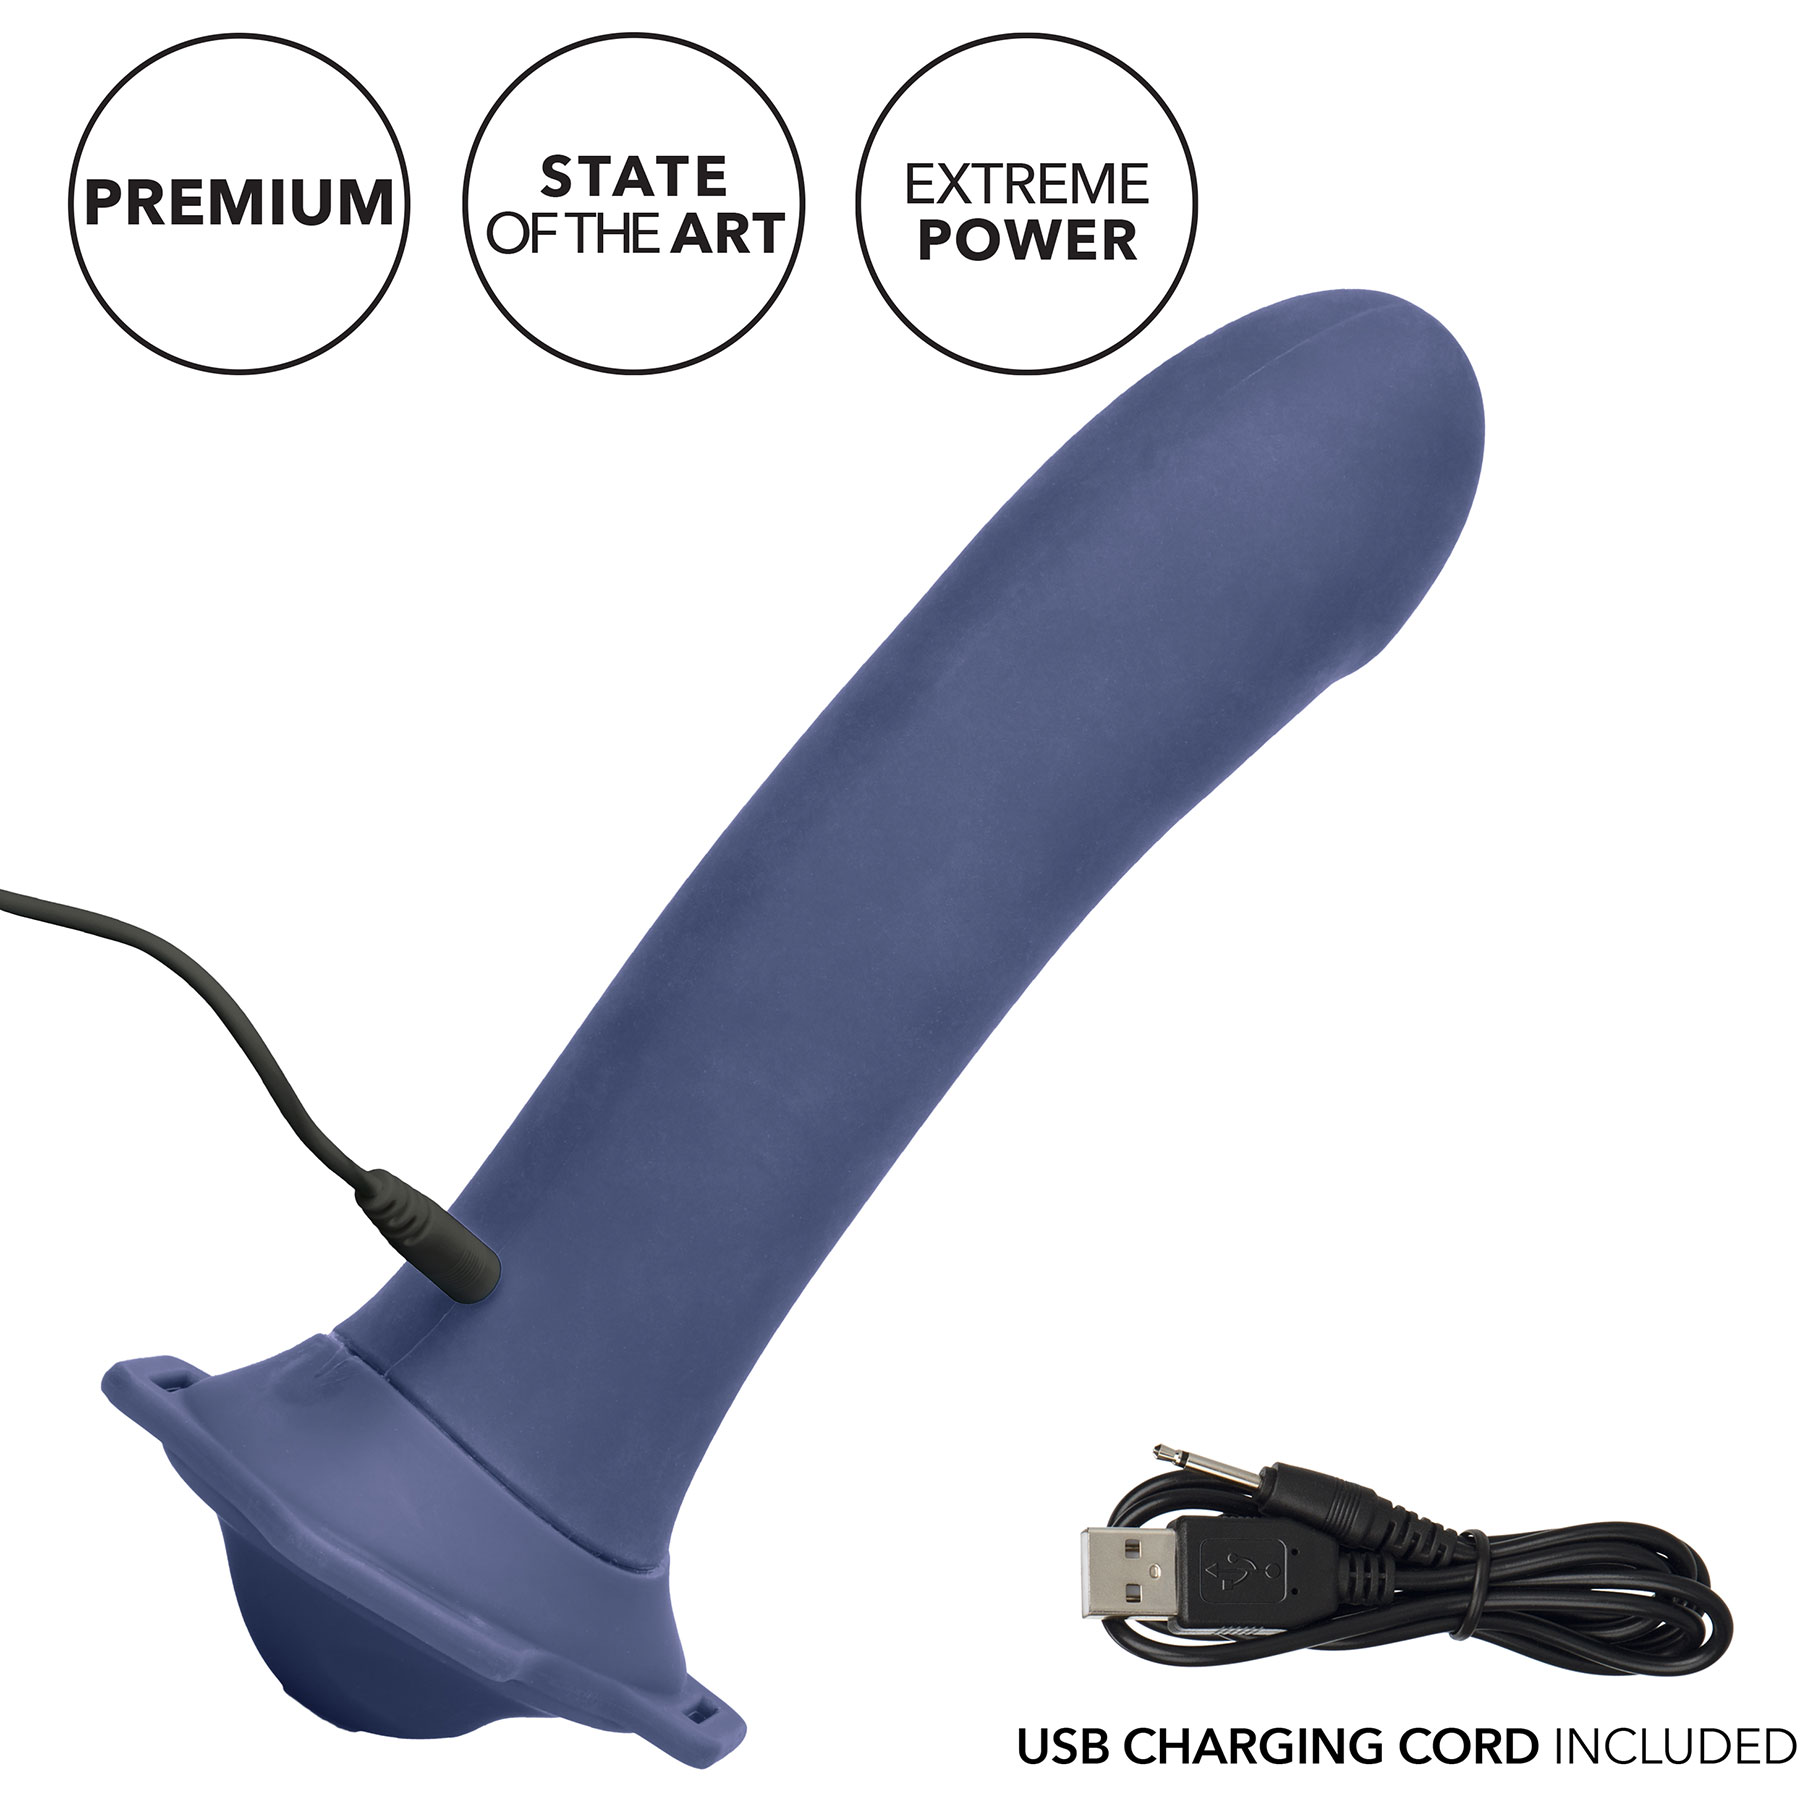 Her Royal Harness ME2 Thumper Set With Pulsing, Vibrating Silicone Probe - Included